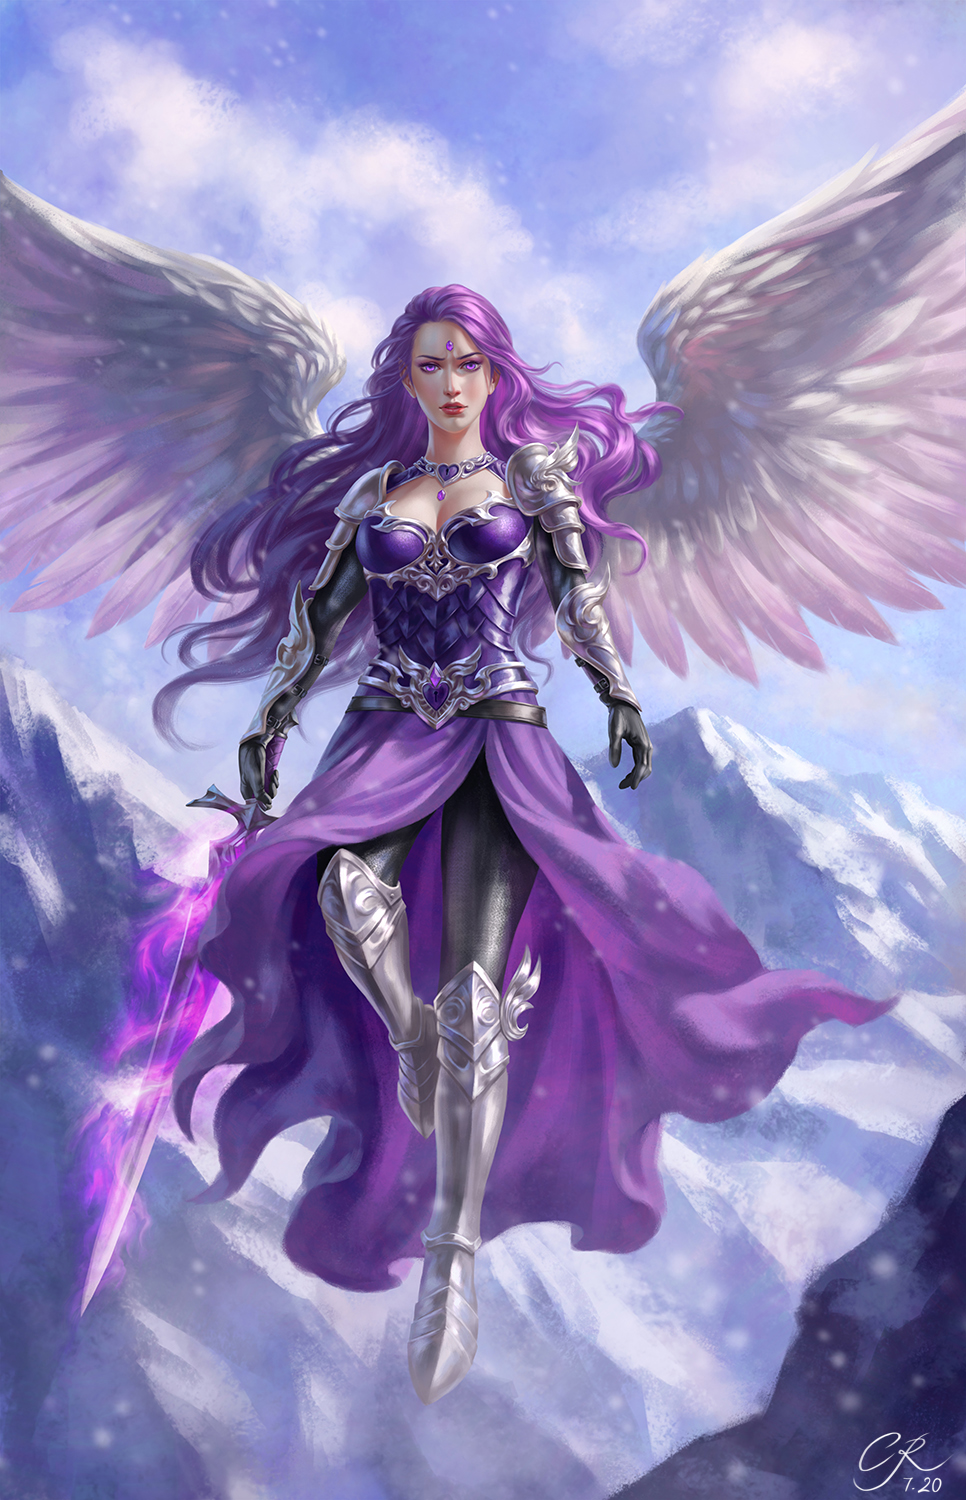 Photo of Commission: Tyria by crystalrain272 on DeviantArt